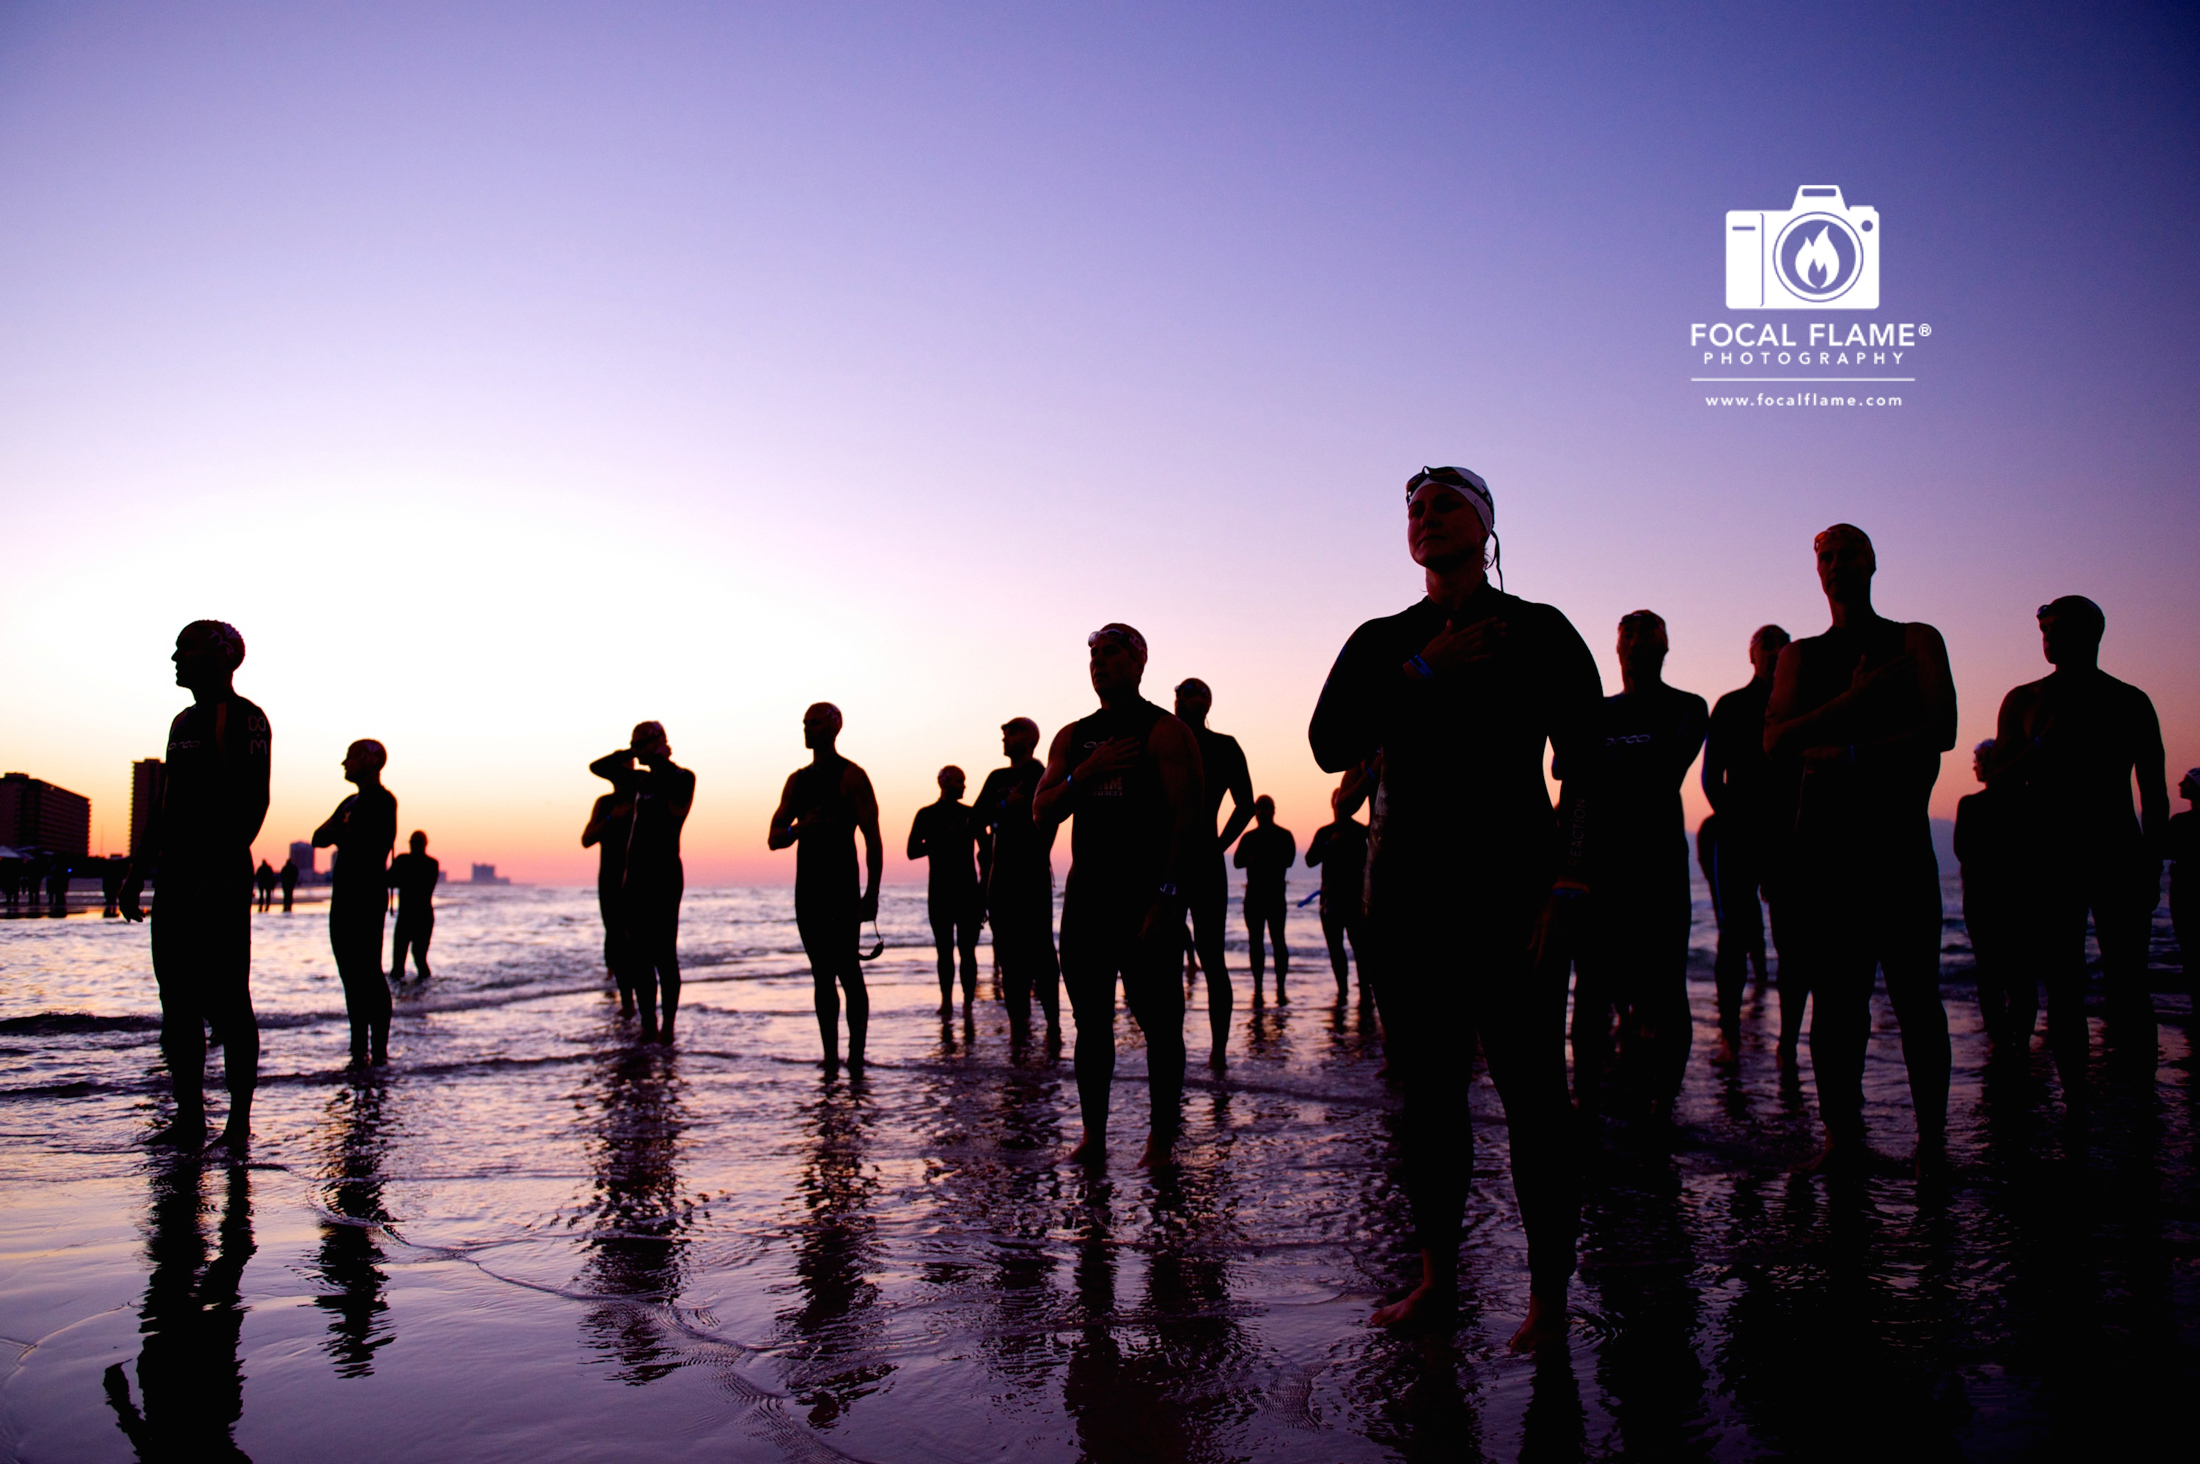 """""""Waiting"""" by Clint Thayer depicts a serene moment prior to a triathlon start."""